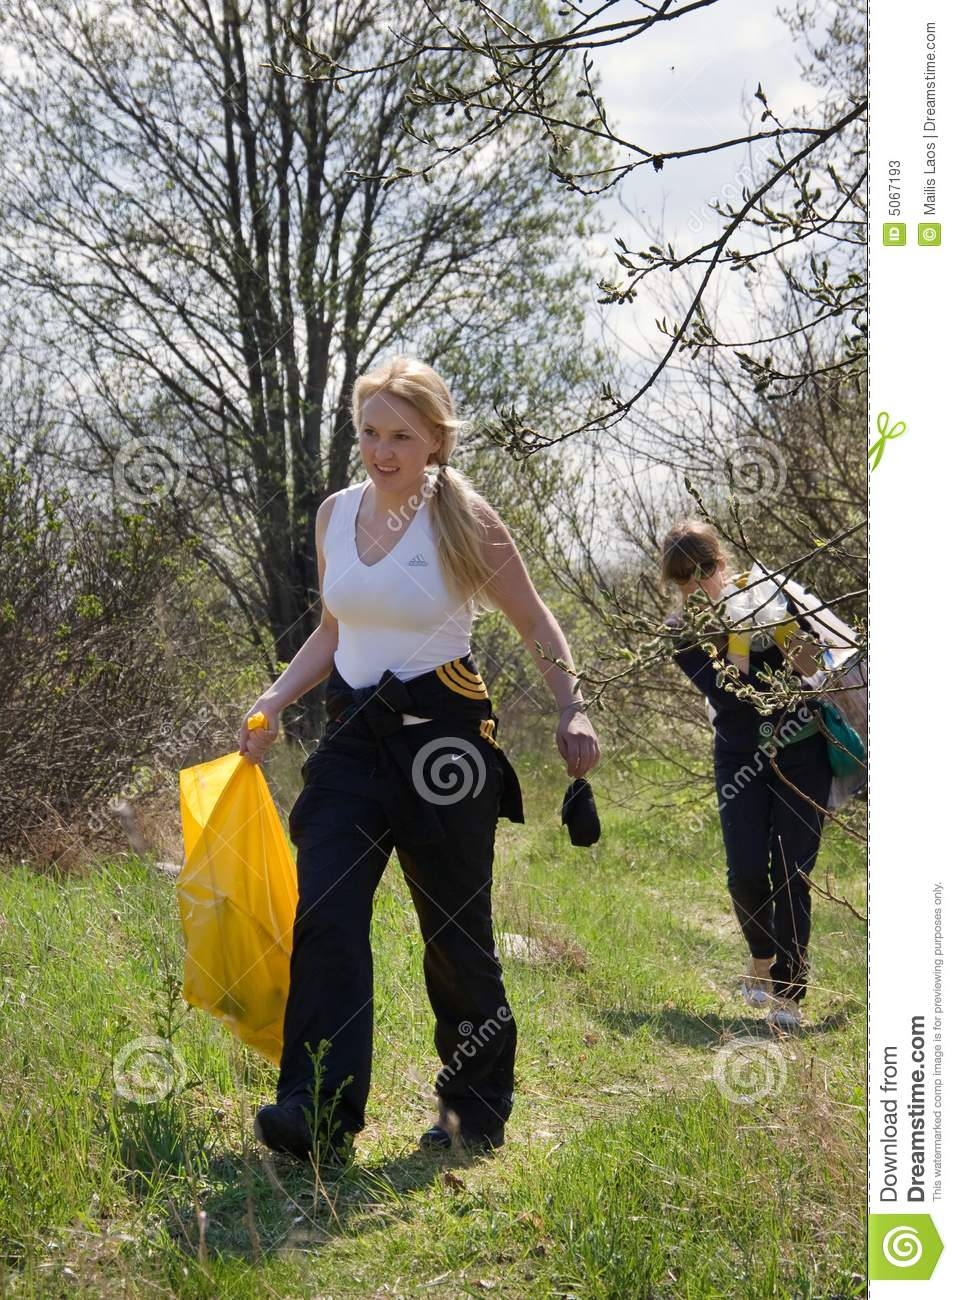 Cleaning forest